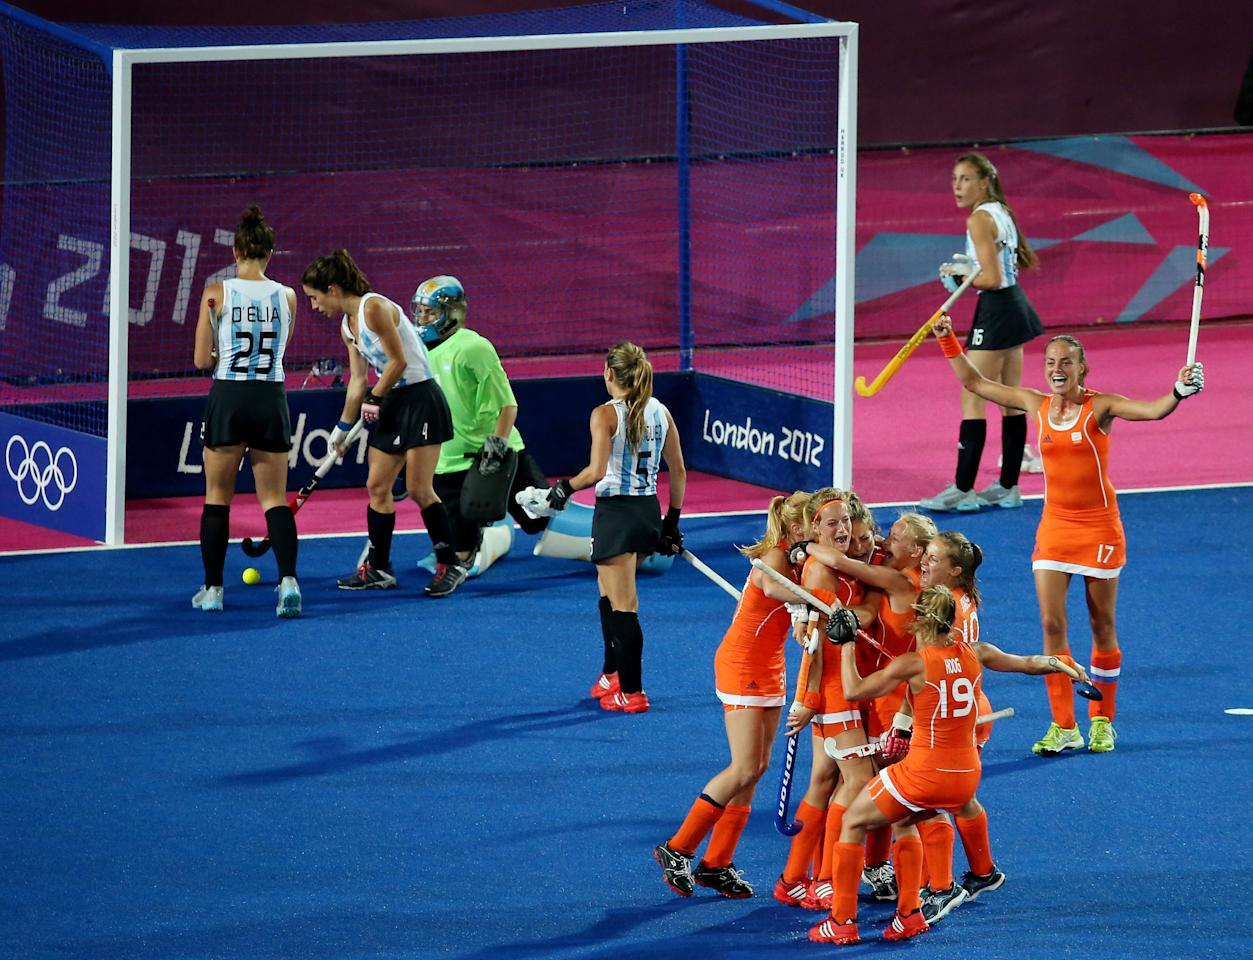 LONDON, ENGLAND - AUGUST 10:  Carlien Dirkse Van Den Heuvel #9 of Netherlands celebrates with her teammates after scoring a goal in the second half against Argentina during the Women's Hockey gold medal match on Day 14 of the London 2012 Olympic Games at Hockey Centre on August 10, 2012 in London, England.  (Photo by Daniel Berehulak/Getty Images)